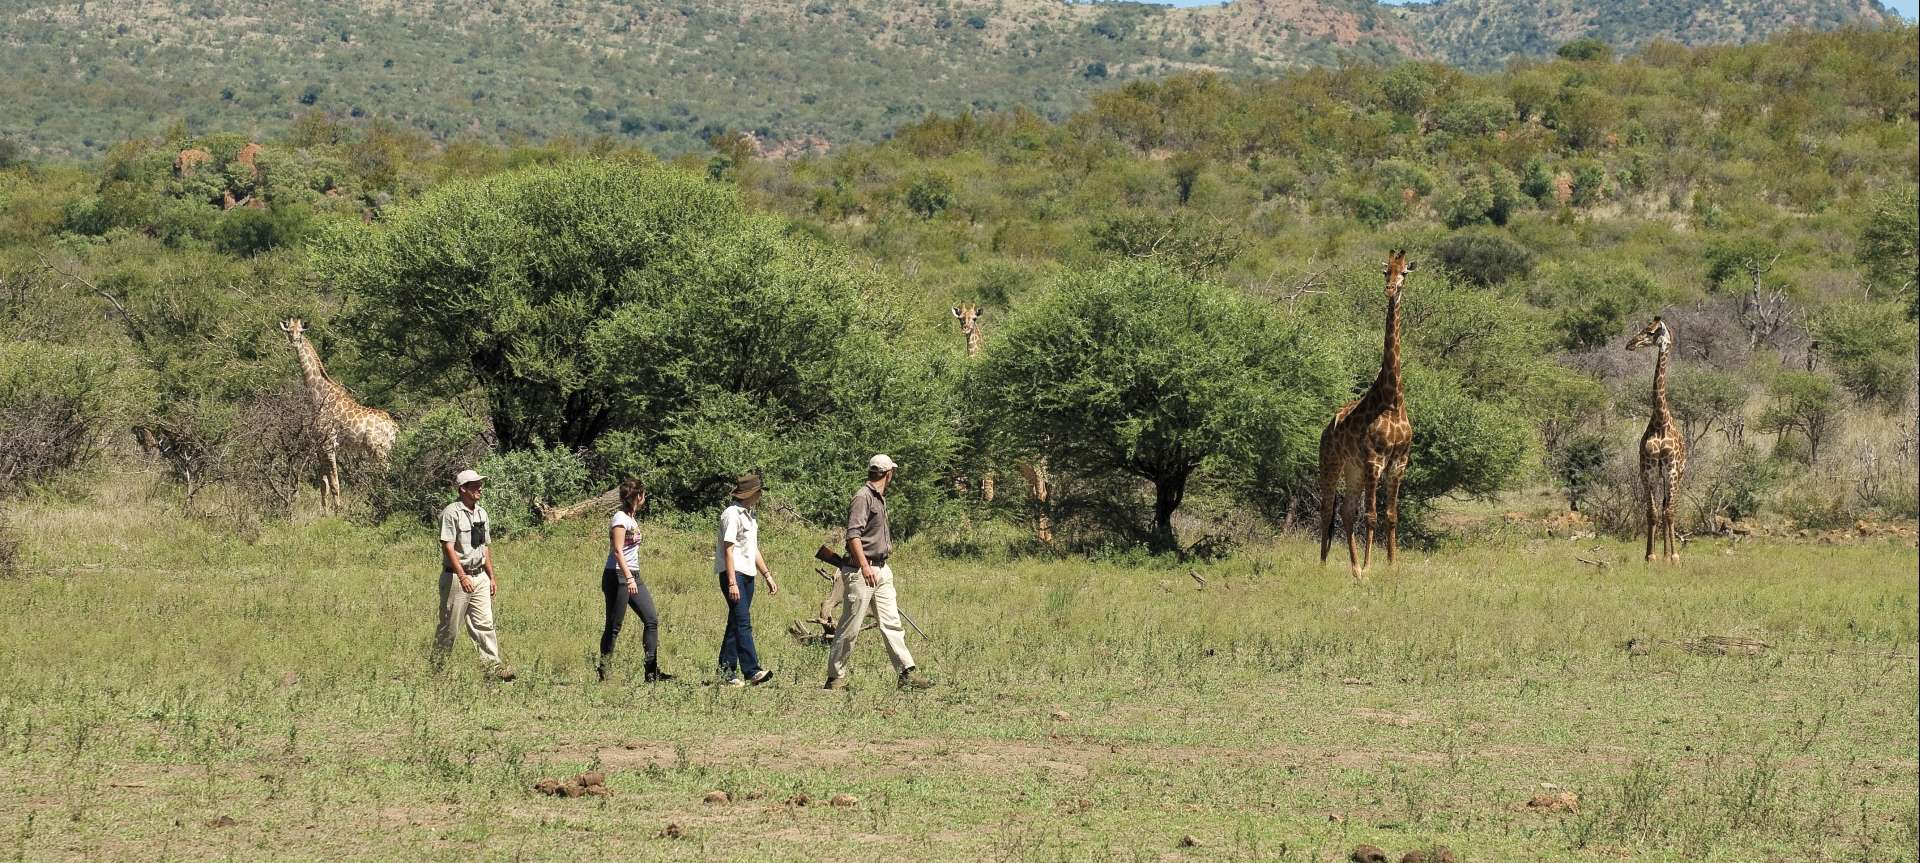 Malaria-free safaris in Africa - Africa Wildlife Safaris